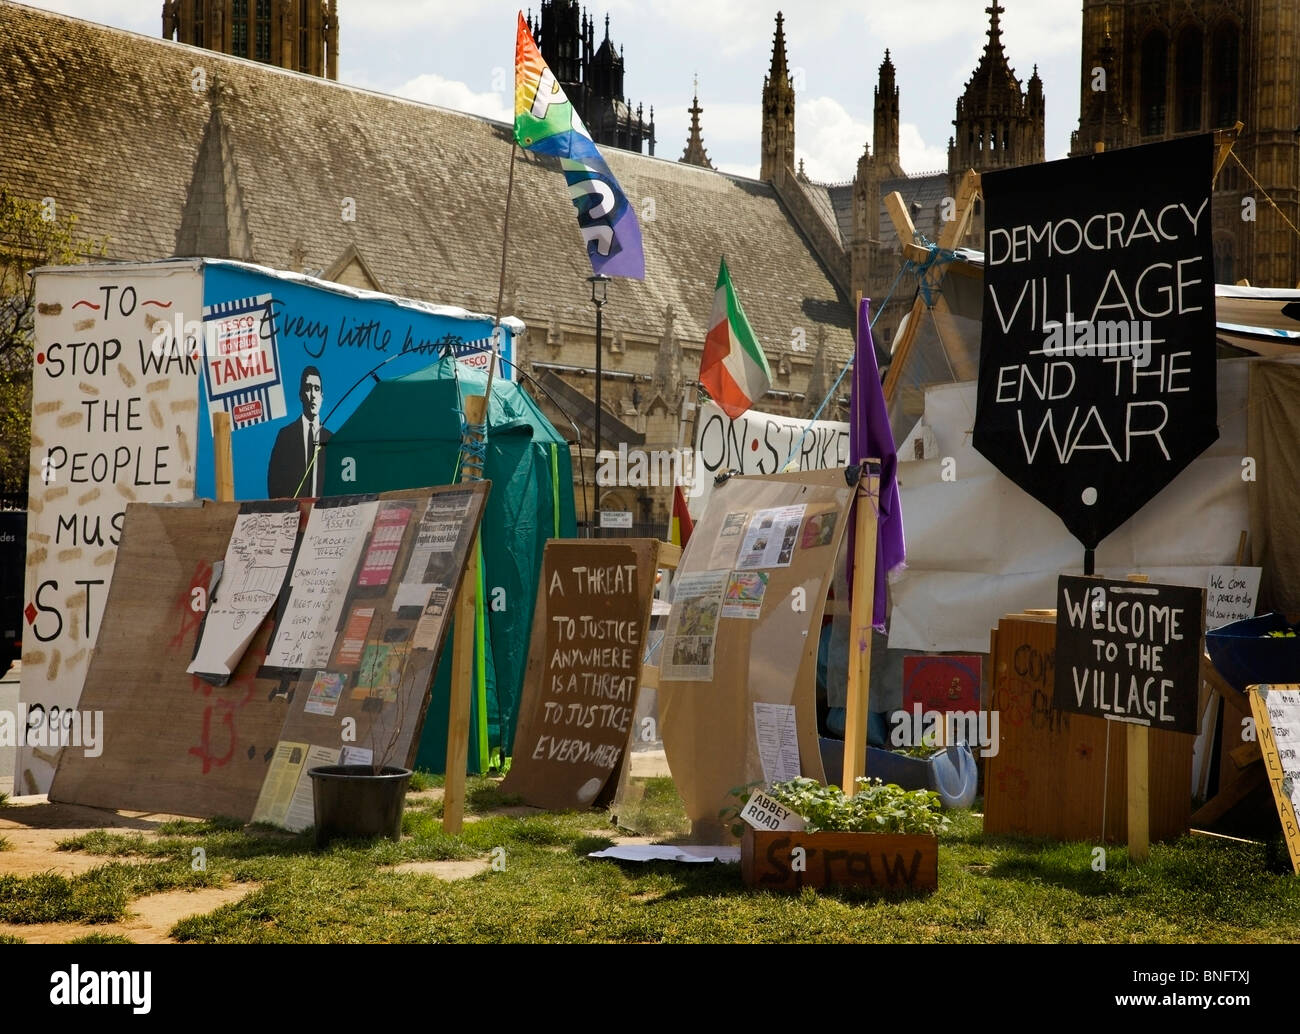 Democracy Village, Peace Camp, Parliament Square, London - Stock Image